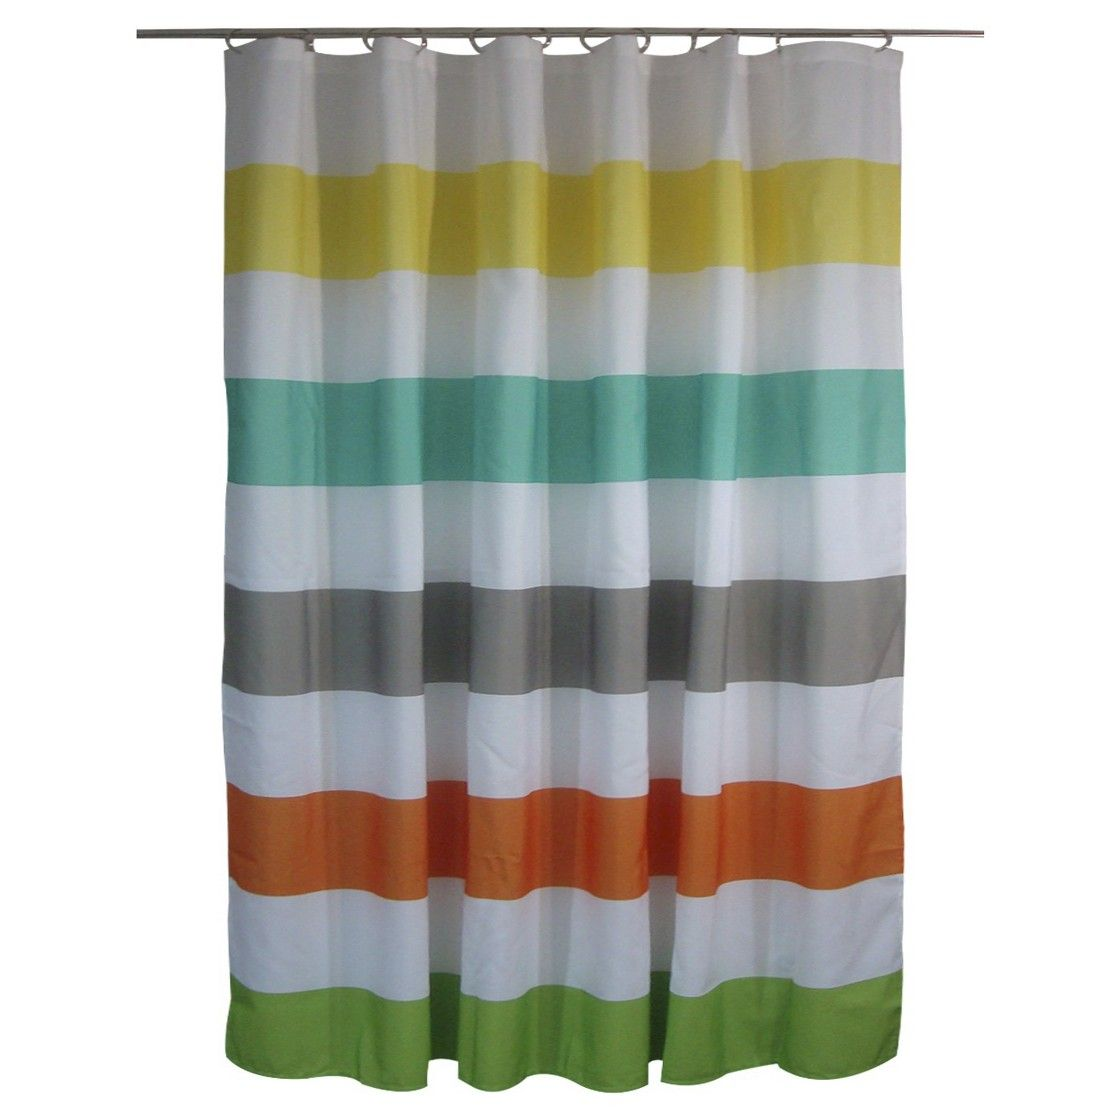 Shower Curtain Circo Rugby Stripes Warm   target   Kids Bathroom     Shower Curtain Circo Rugby Stripes Warm   target